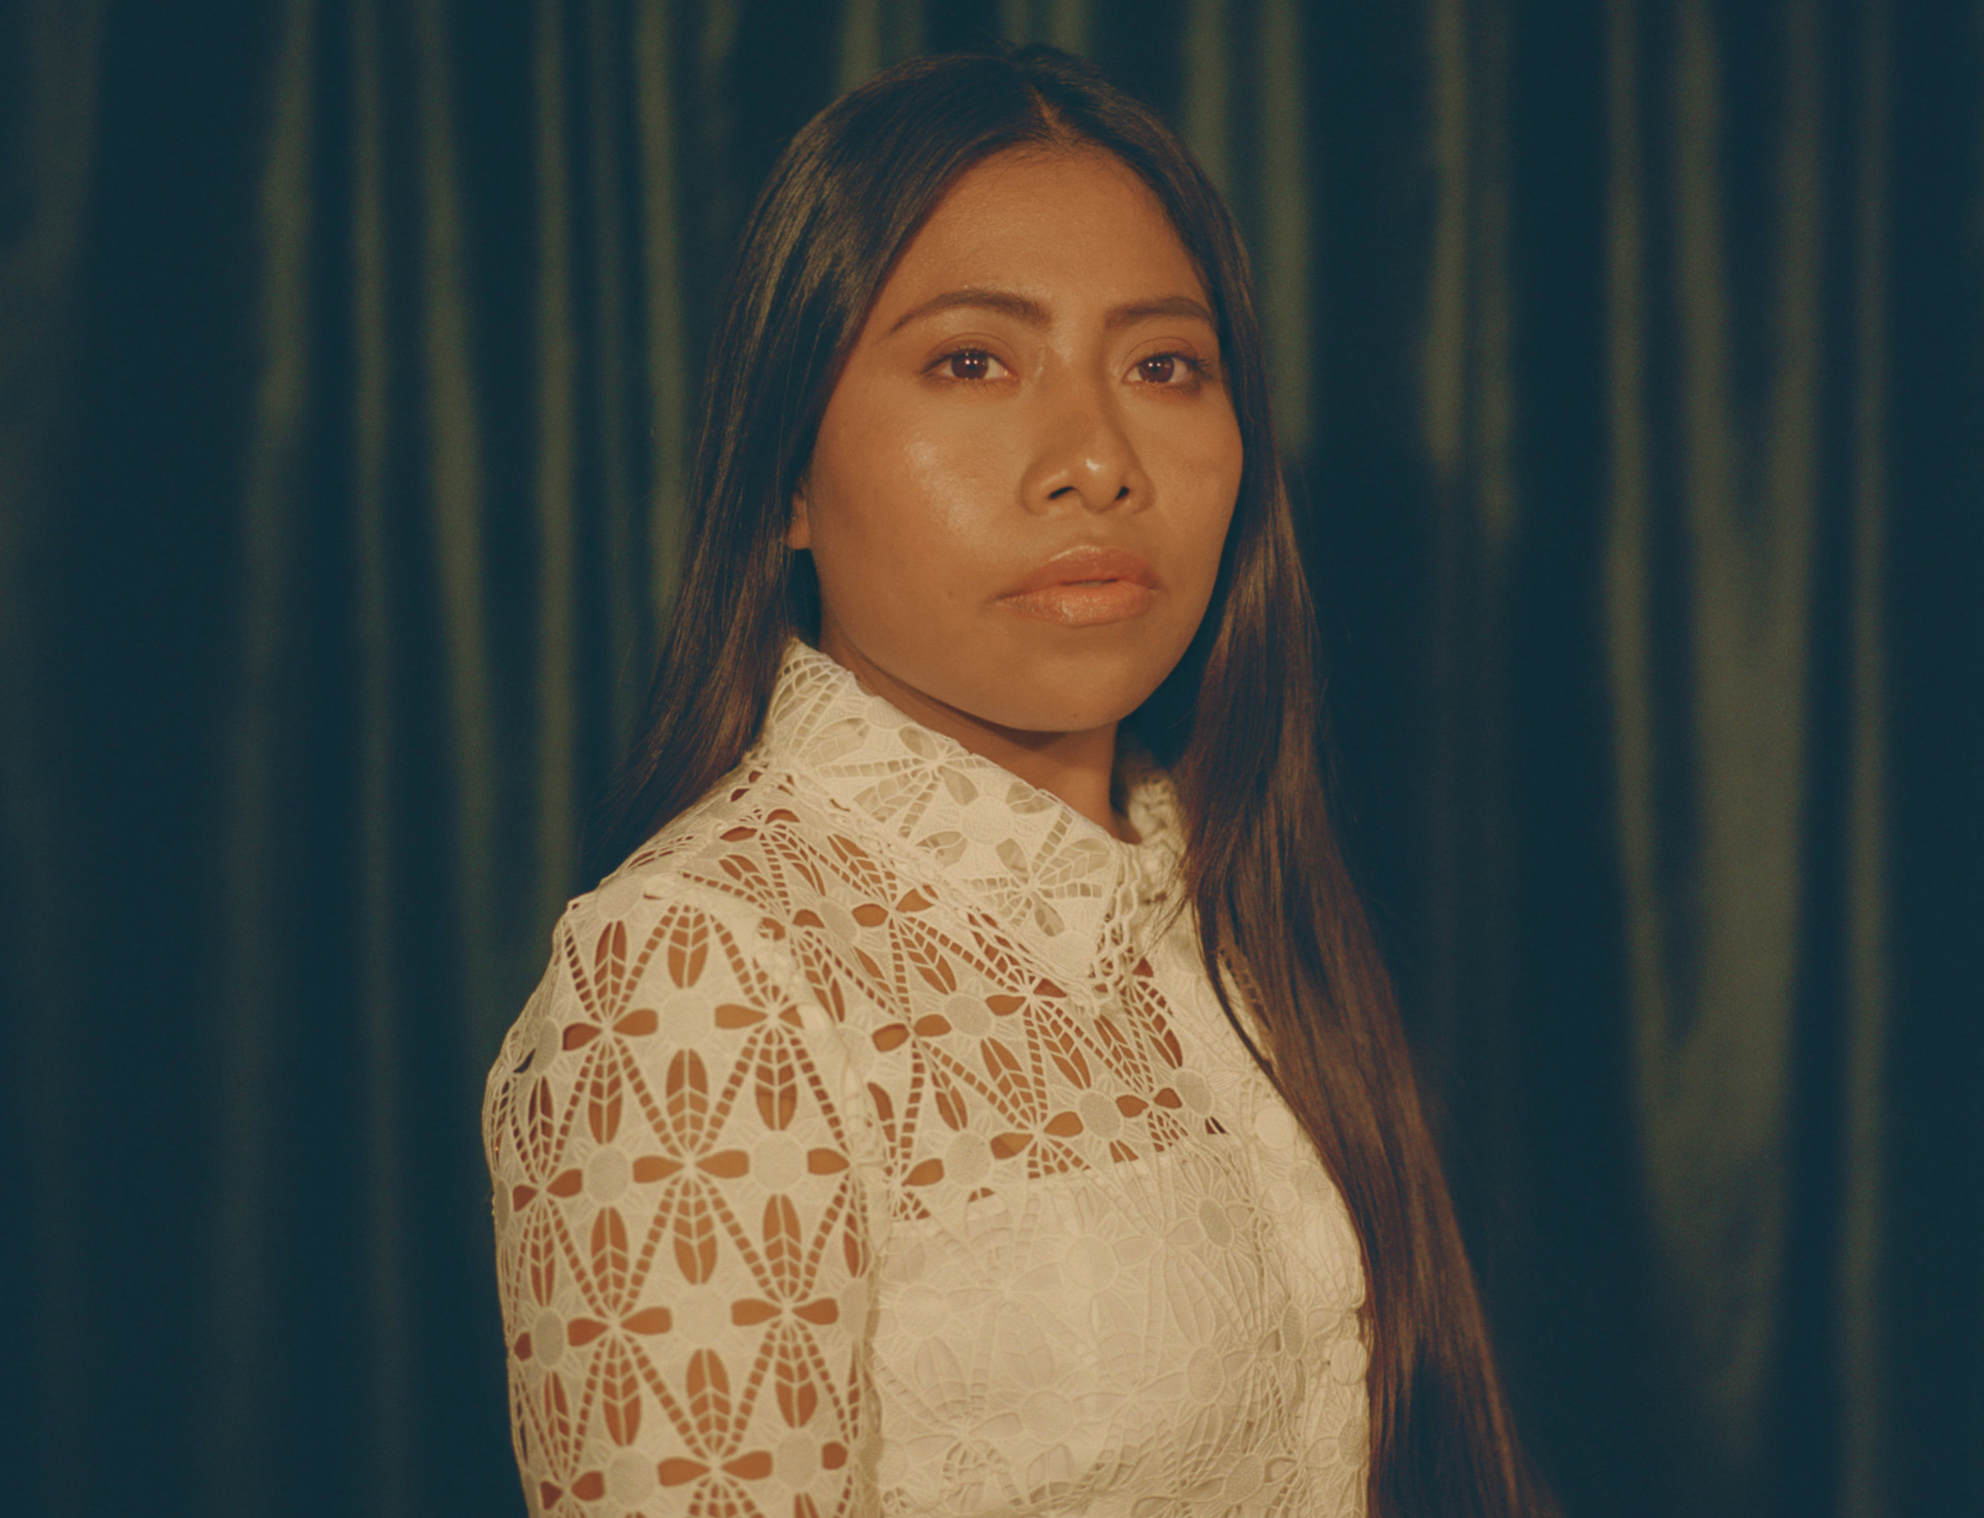 The New York Times ,  Yalitza Aparicio of 'Roma' and the Politics of Stardom in Mexico , 2019